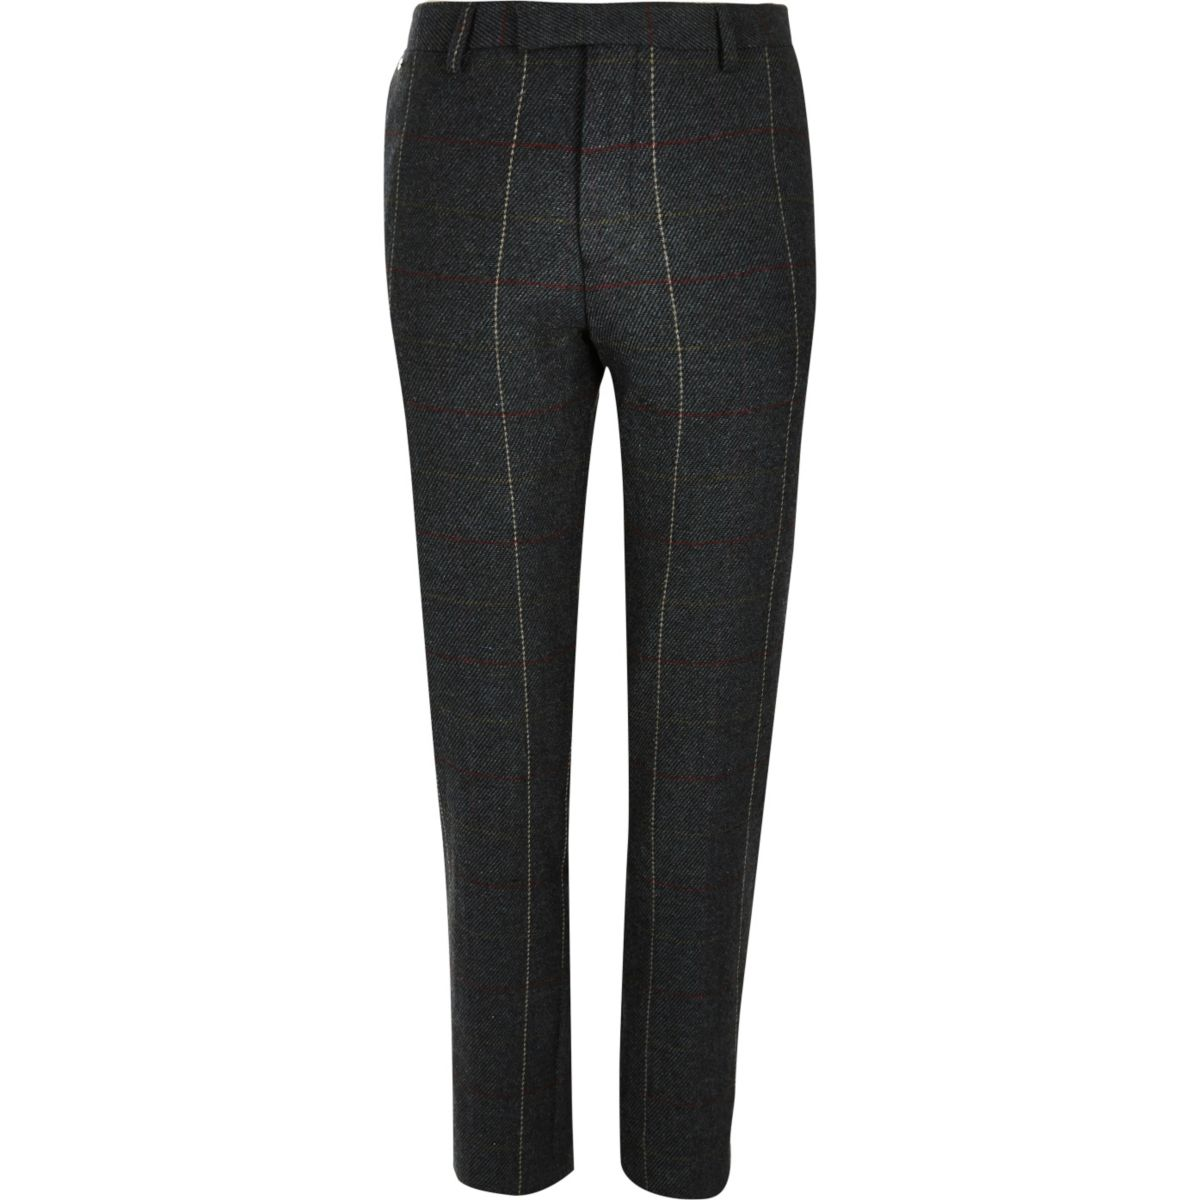 Dark green check skinny suit trousers - Suit Trousers - Suits - men